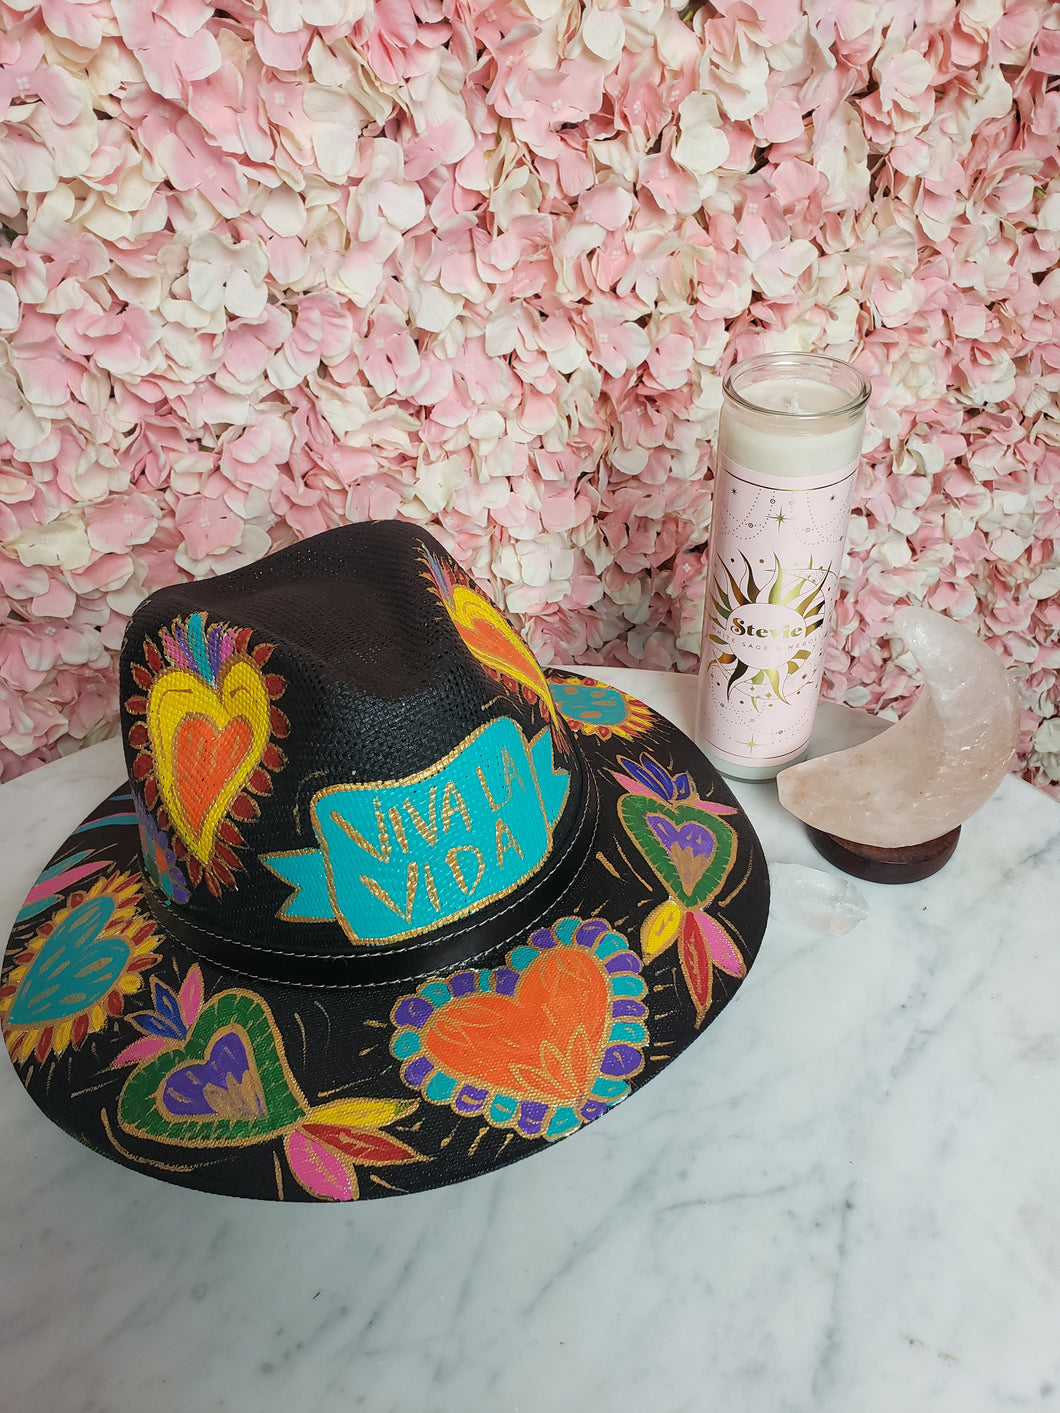 Hand Painted Black Straw Hat - Viva la Vida